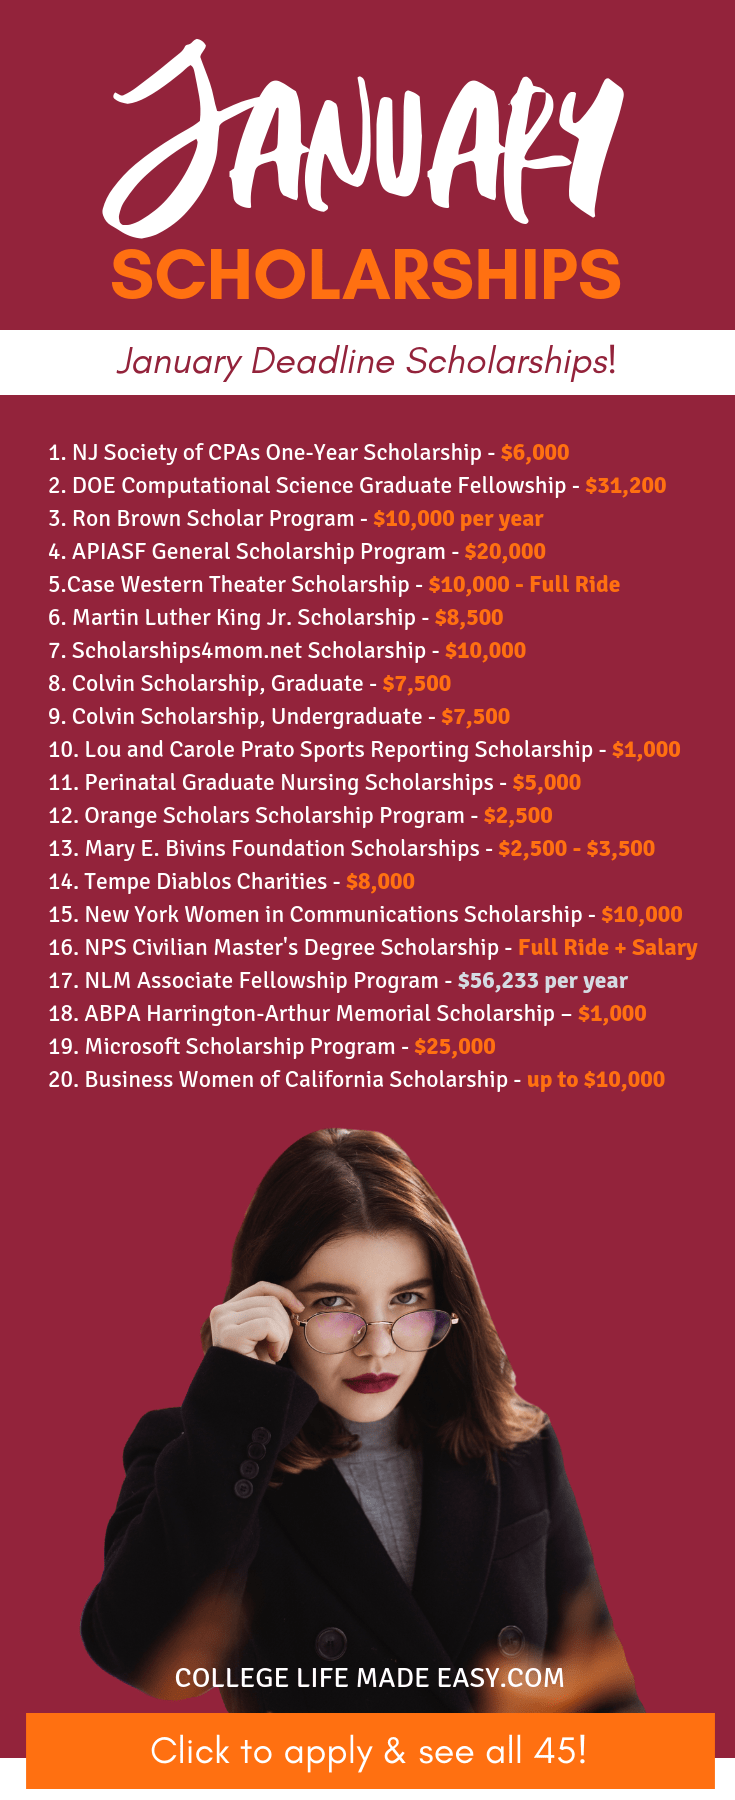 45 January scholarships to apply for this year! College stduents who need money to pay for school should apply for these scholarships due in January. Get to applying early by clicking to read this article!#scholarship #scholarships #2019 #college #student #collegelife